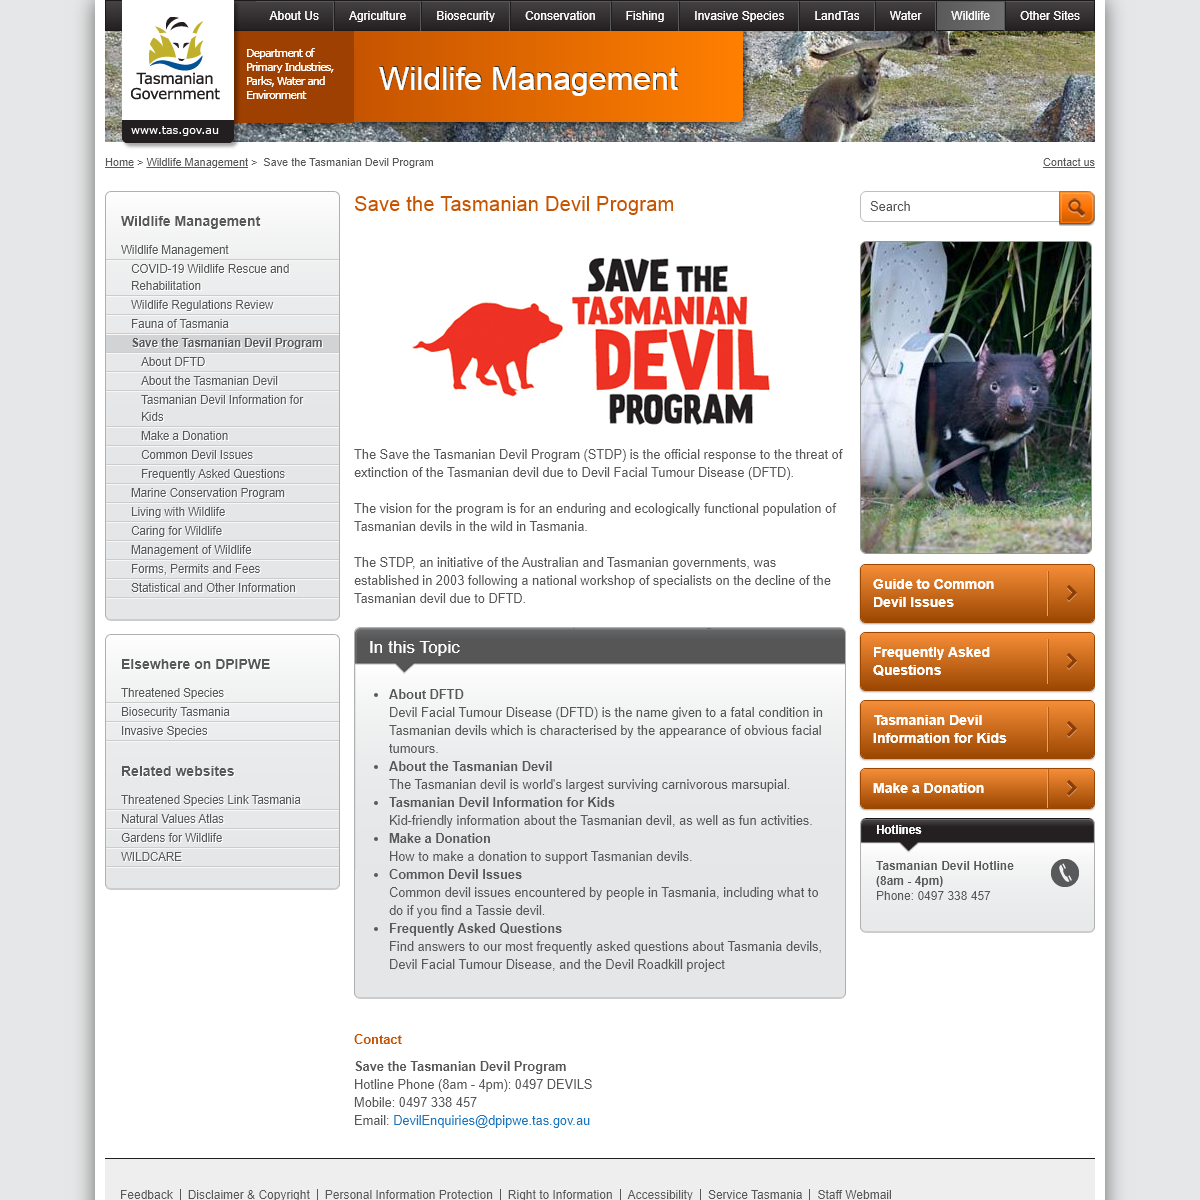 Save the Tasmanian Devil Program - Department of Primary Industries, Parks, Water and Environment, Tasmania